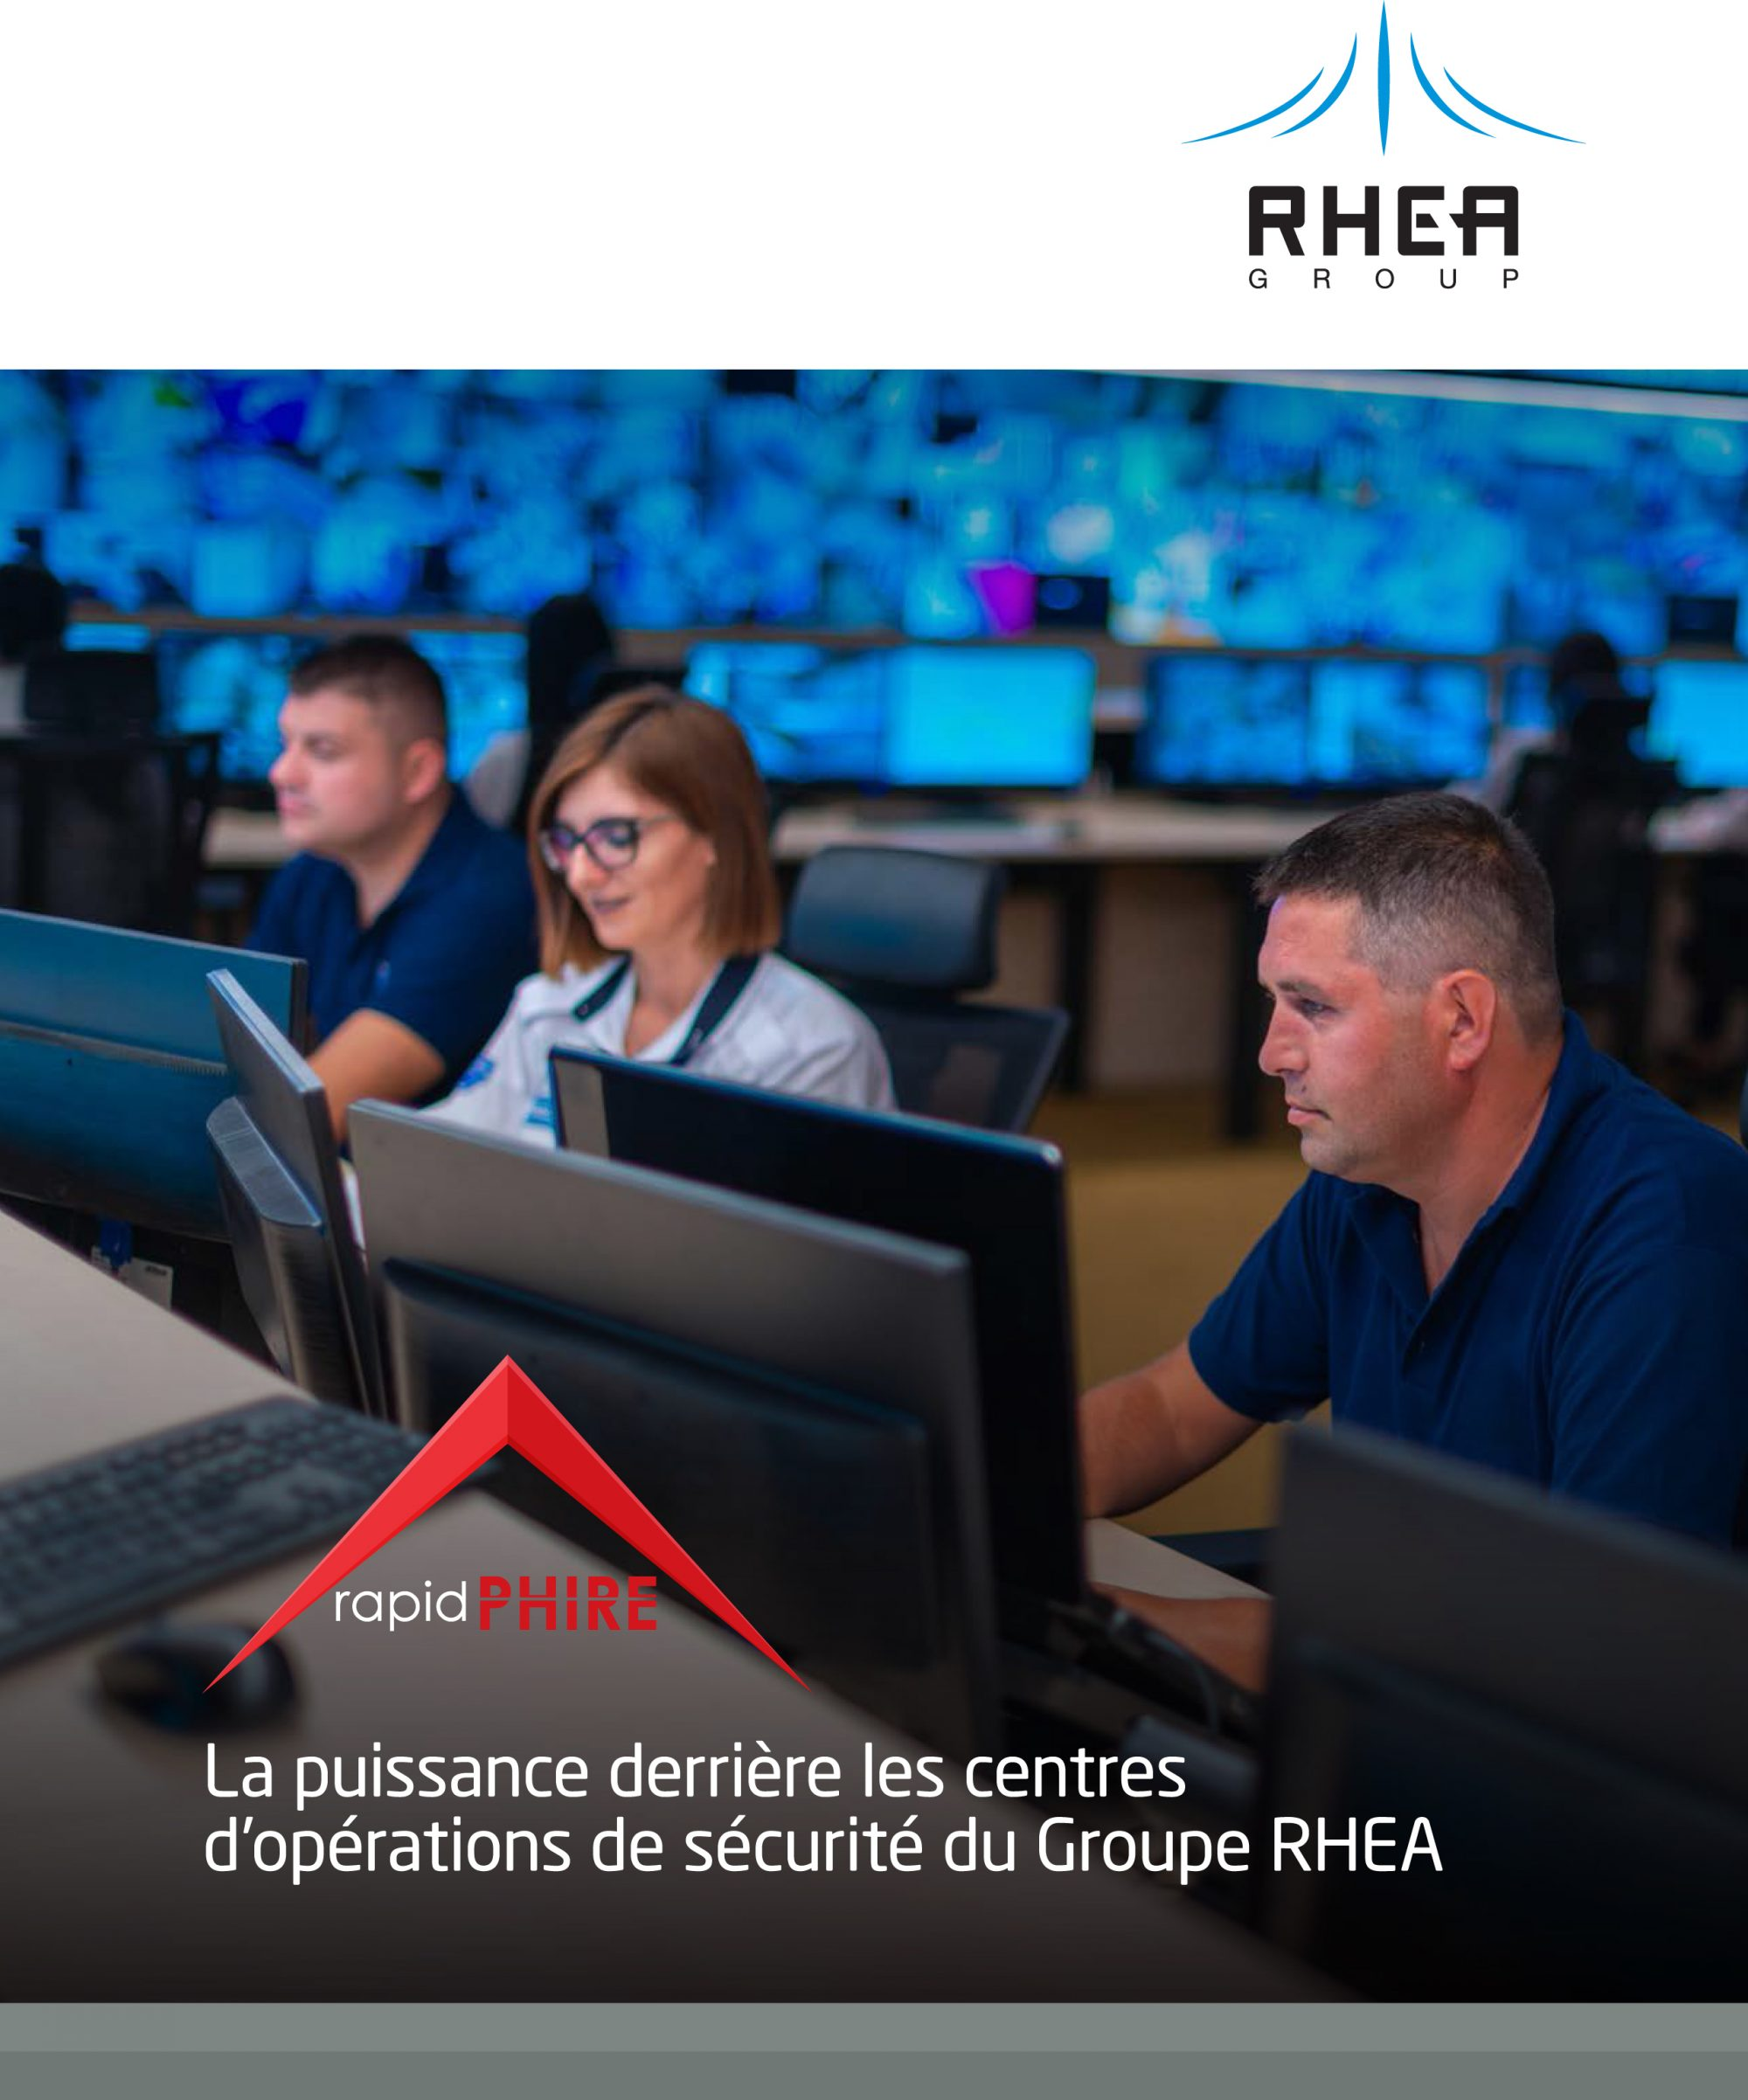 RHEA Group rapidPHIRE brochure cover - French